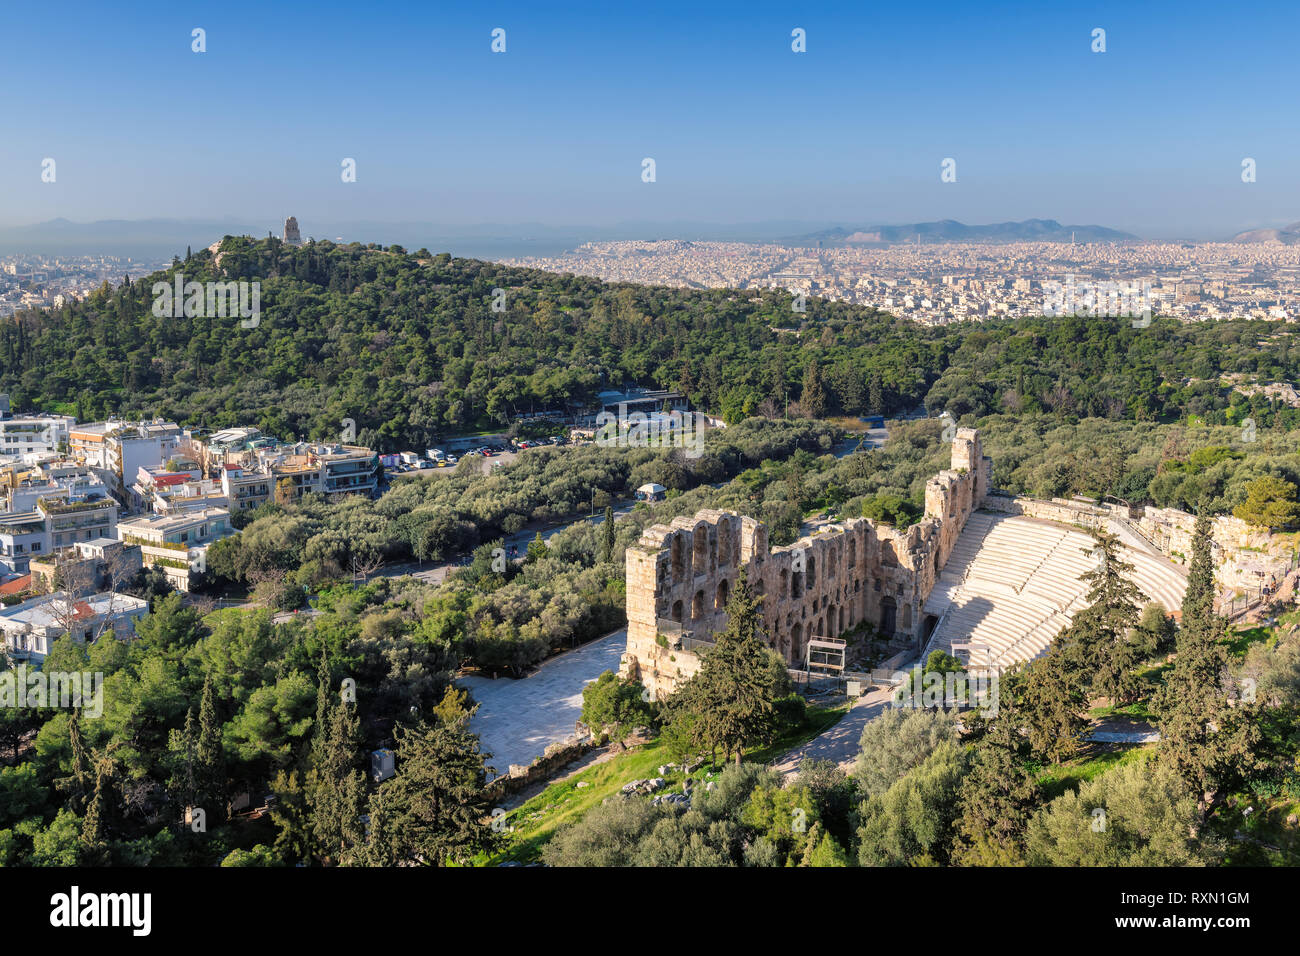 Odeon of Herodes Atticus on Acropolis hill in Athens, Greece - Stock Image